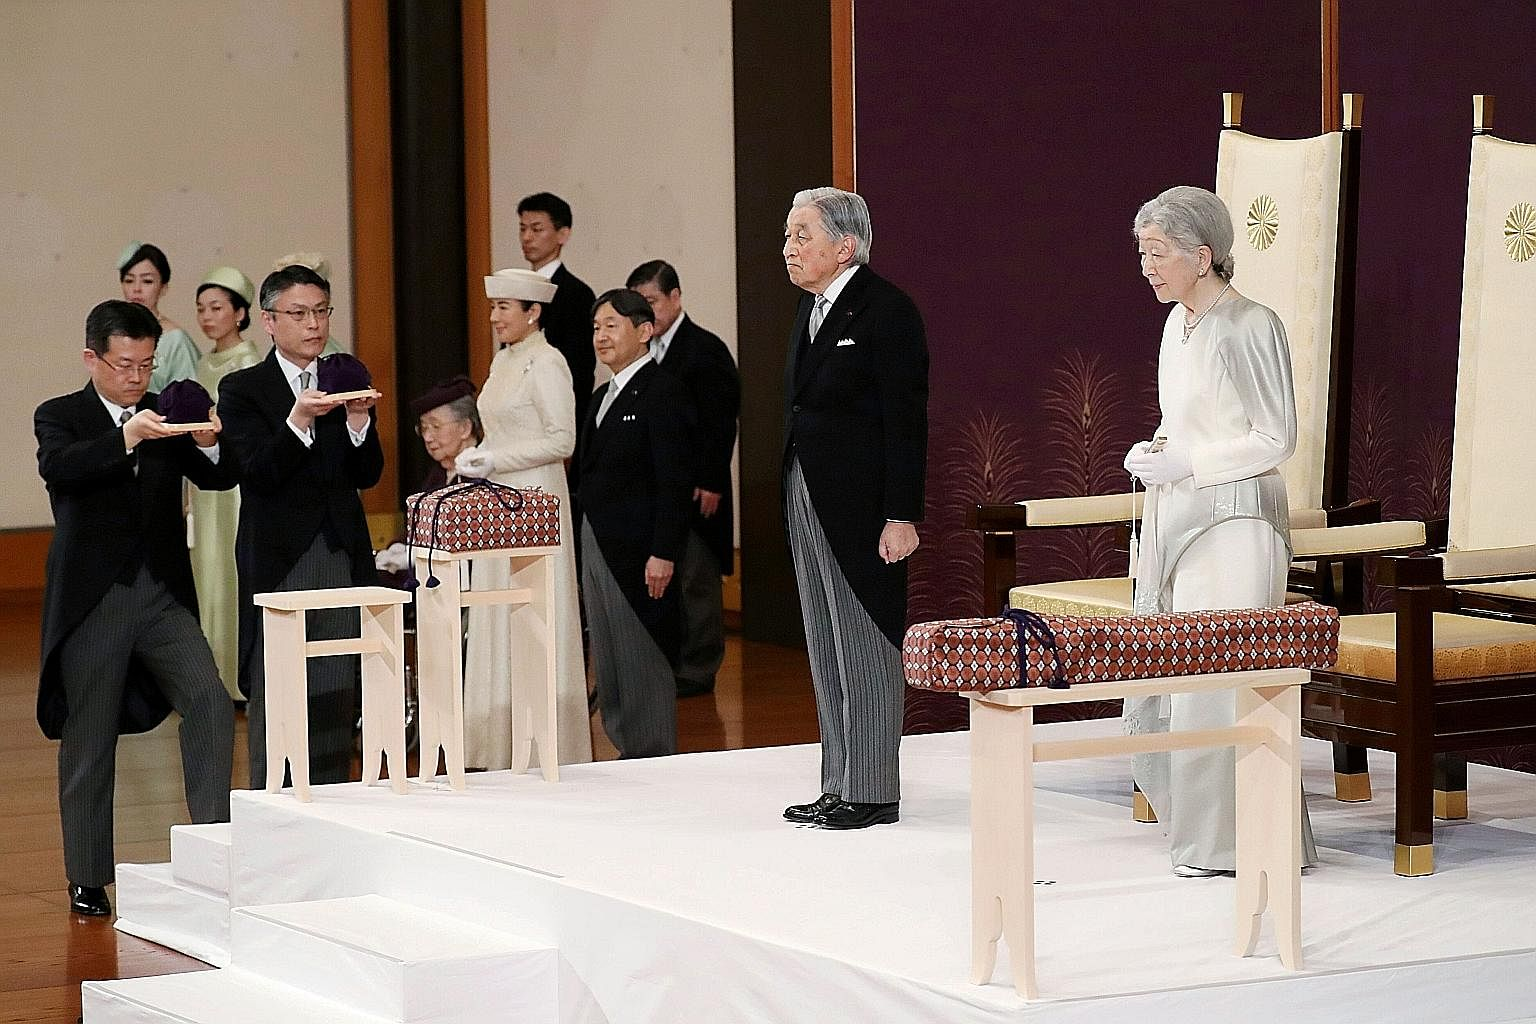 Japan's Emperor Akihito and Empress Michiko, together with Crown Prince Naruhito and Crown Princess Masako, attending the abdication ceremony at the State Room in the Imperial Palace in Tokyo yesterday. Emperor Akihito, 85, in his final remarks as hi